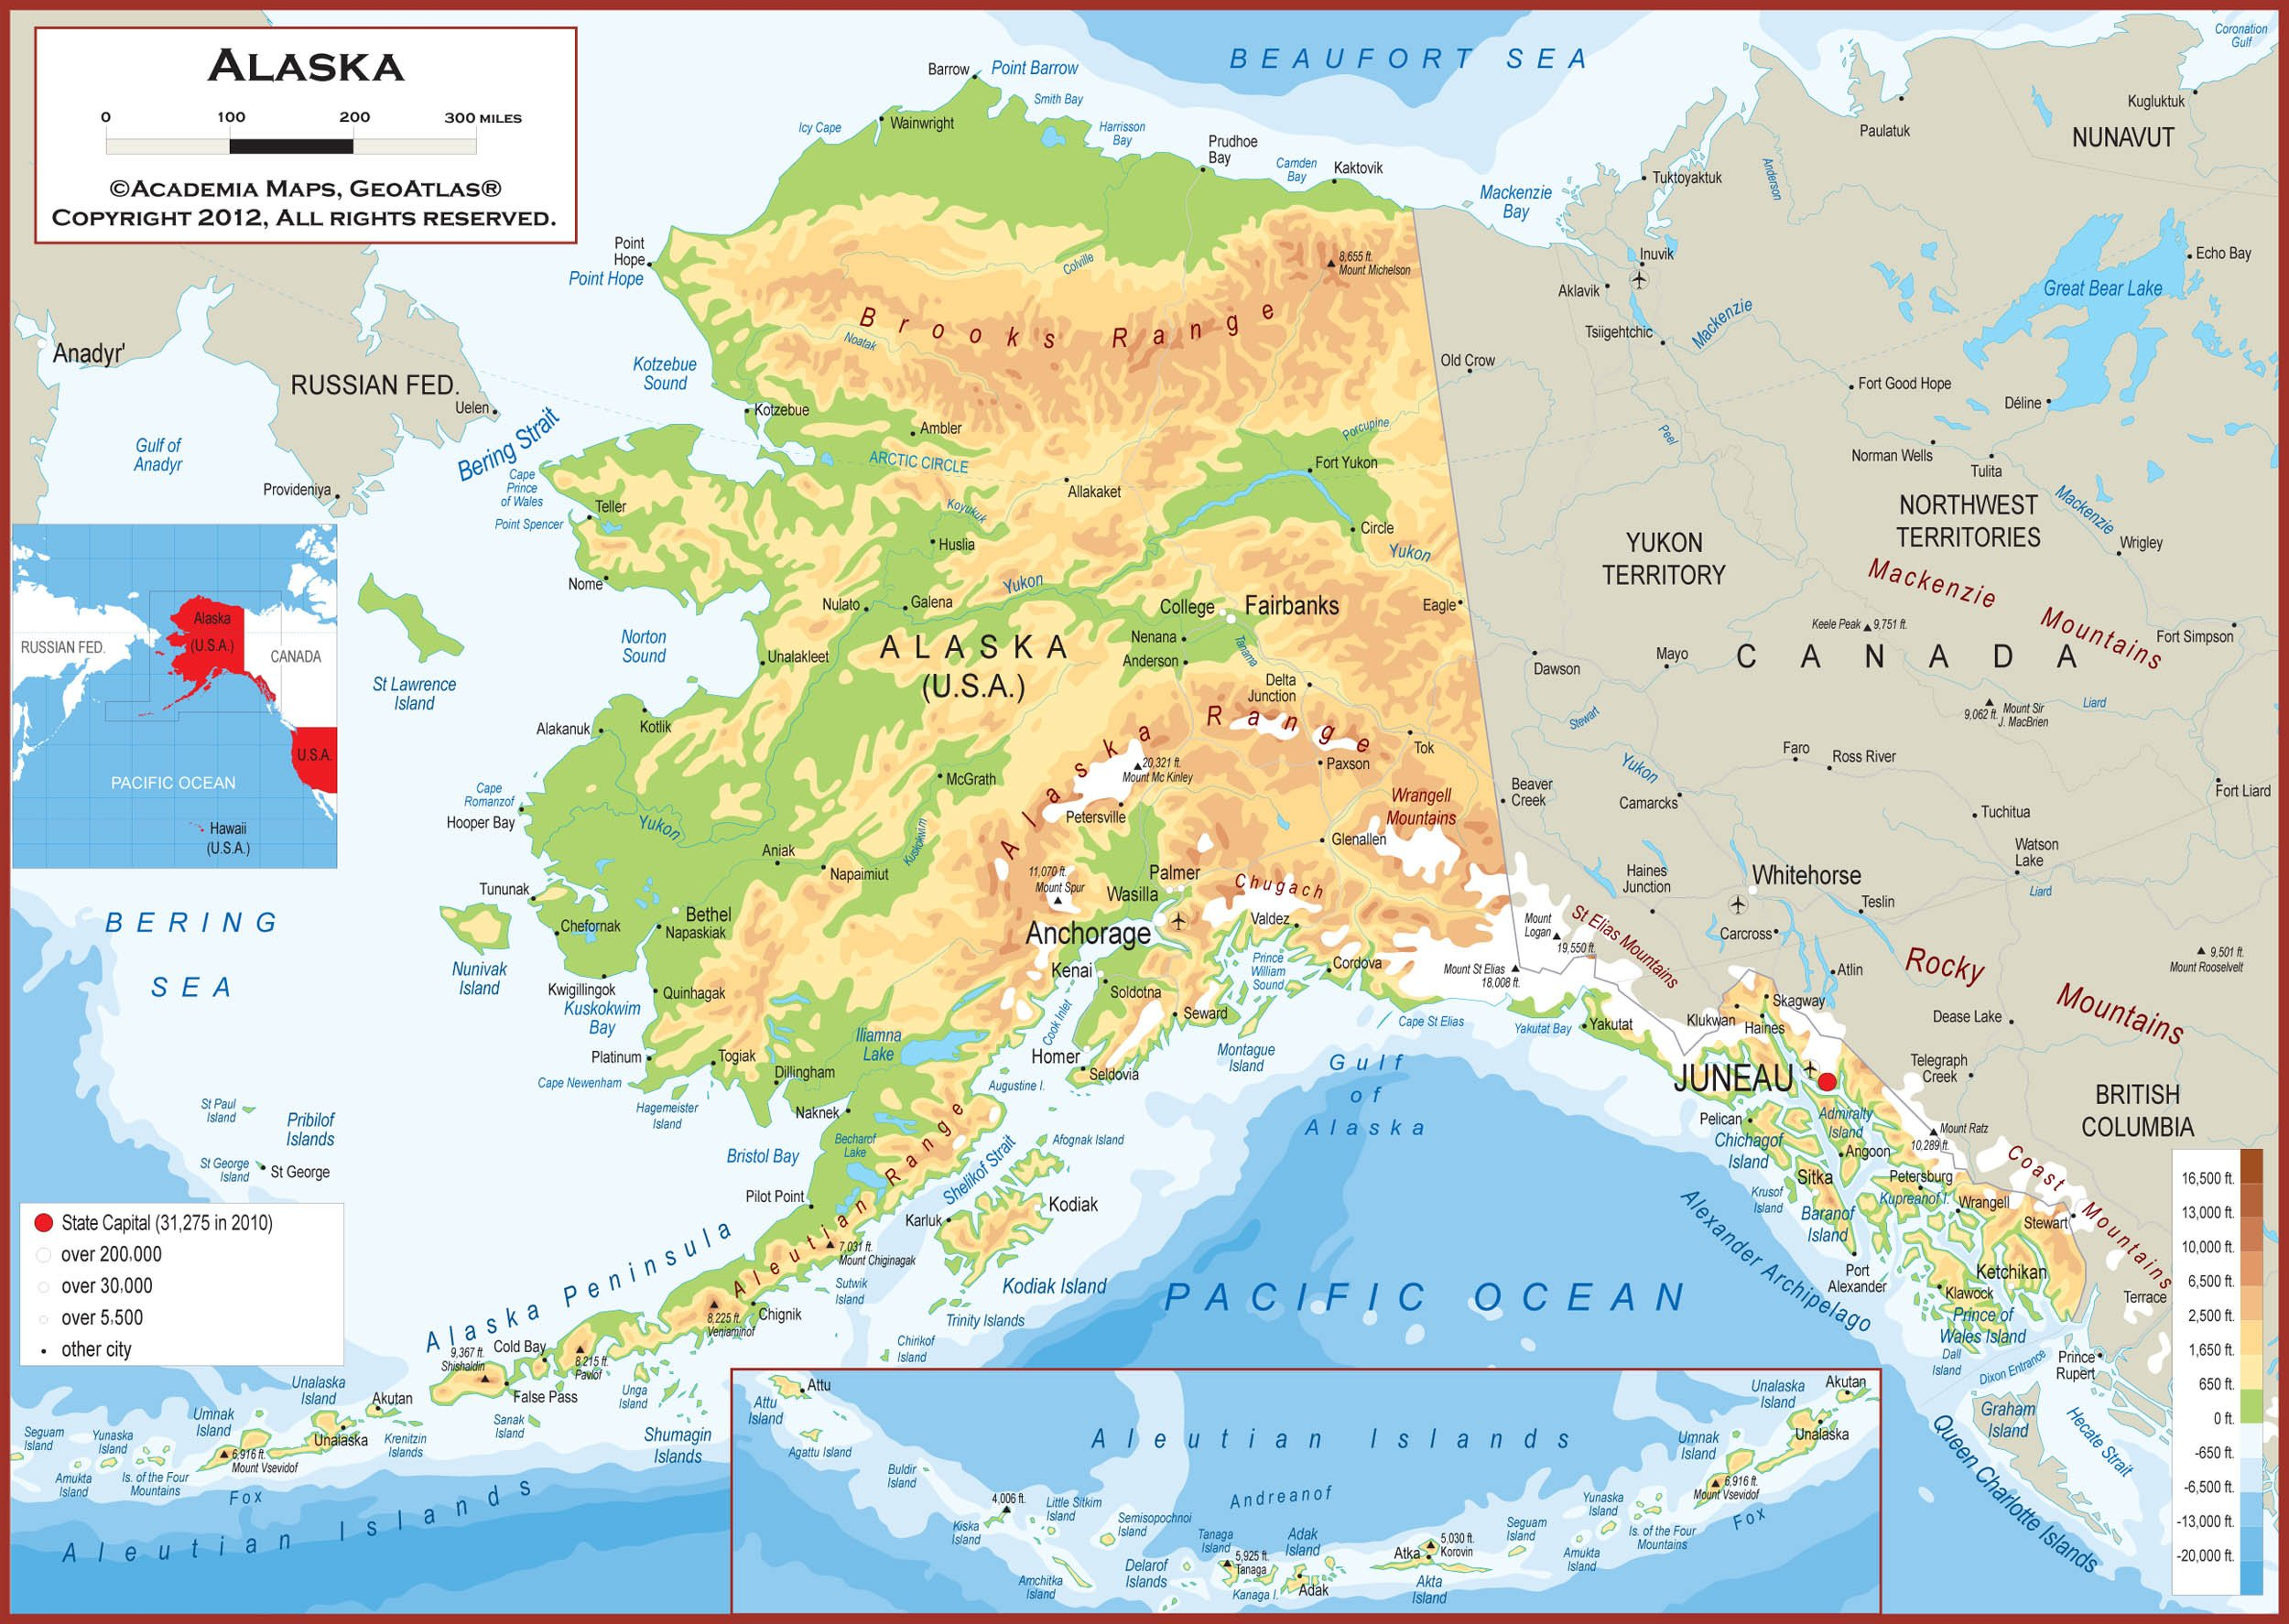 60 x 42 Giant Alaska State Wall Map Poster with Topography - Classroom Style Map with Durable Lamination - Safe for Use with Wet/Dry Erase Marker - Brass Eyelets for Enhanced Durability